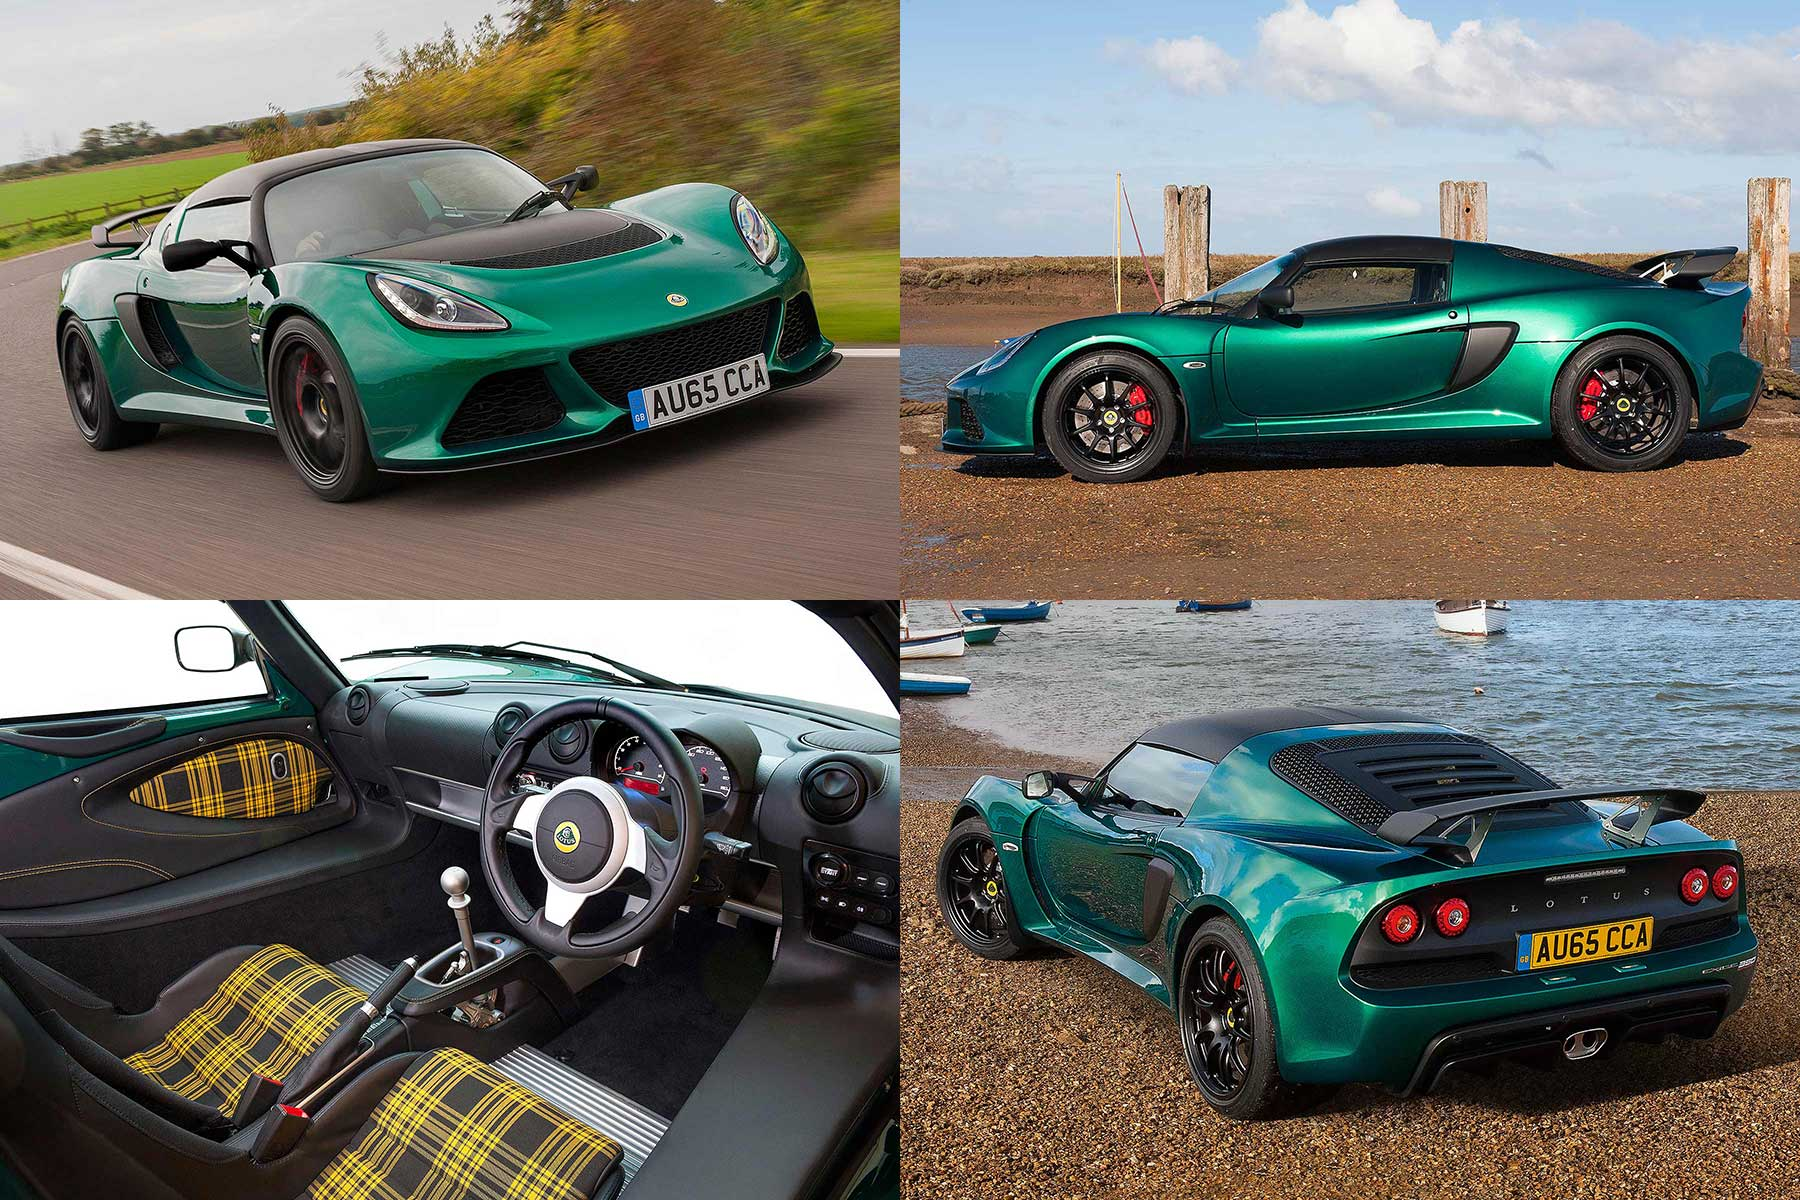 https://www.motoringresearch.com/wp-content/uploads/2015/12/00_Lotus_Exige_Sport_350_2016.jpg